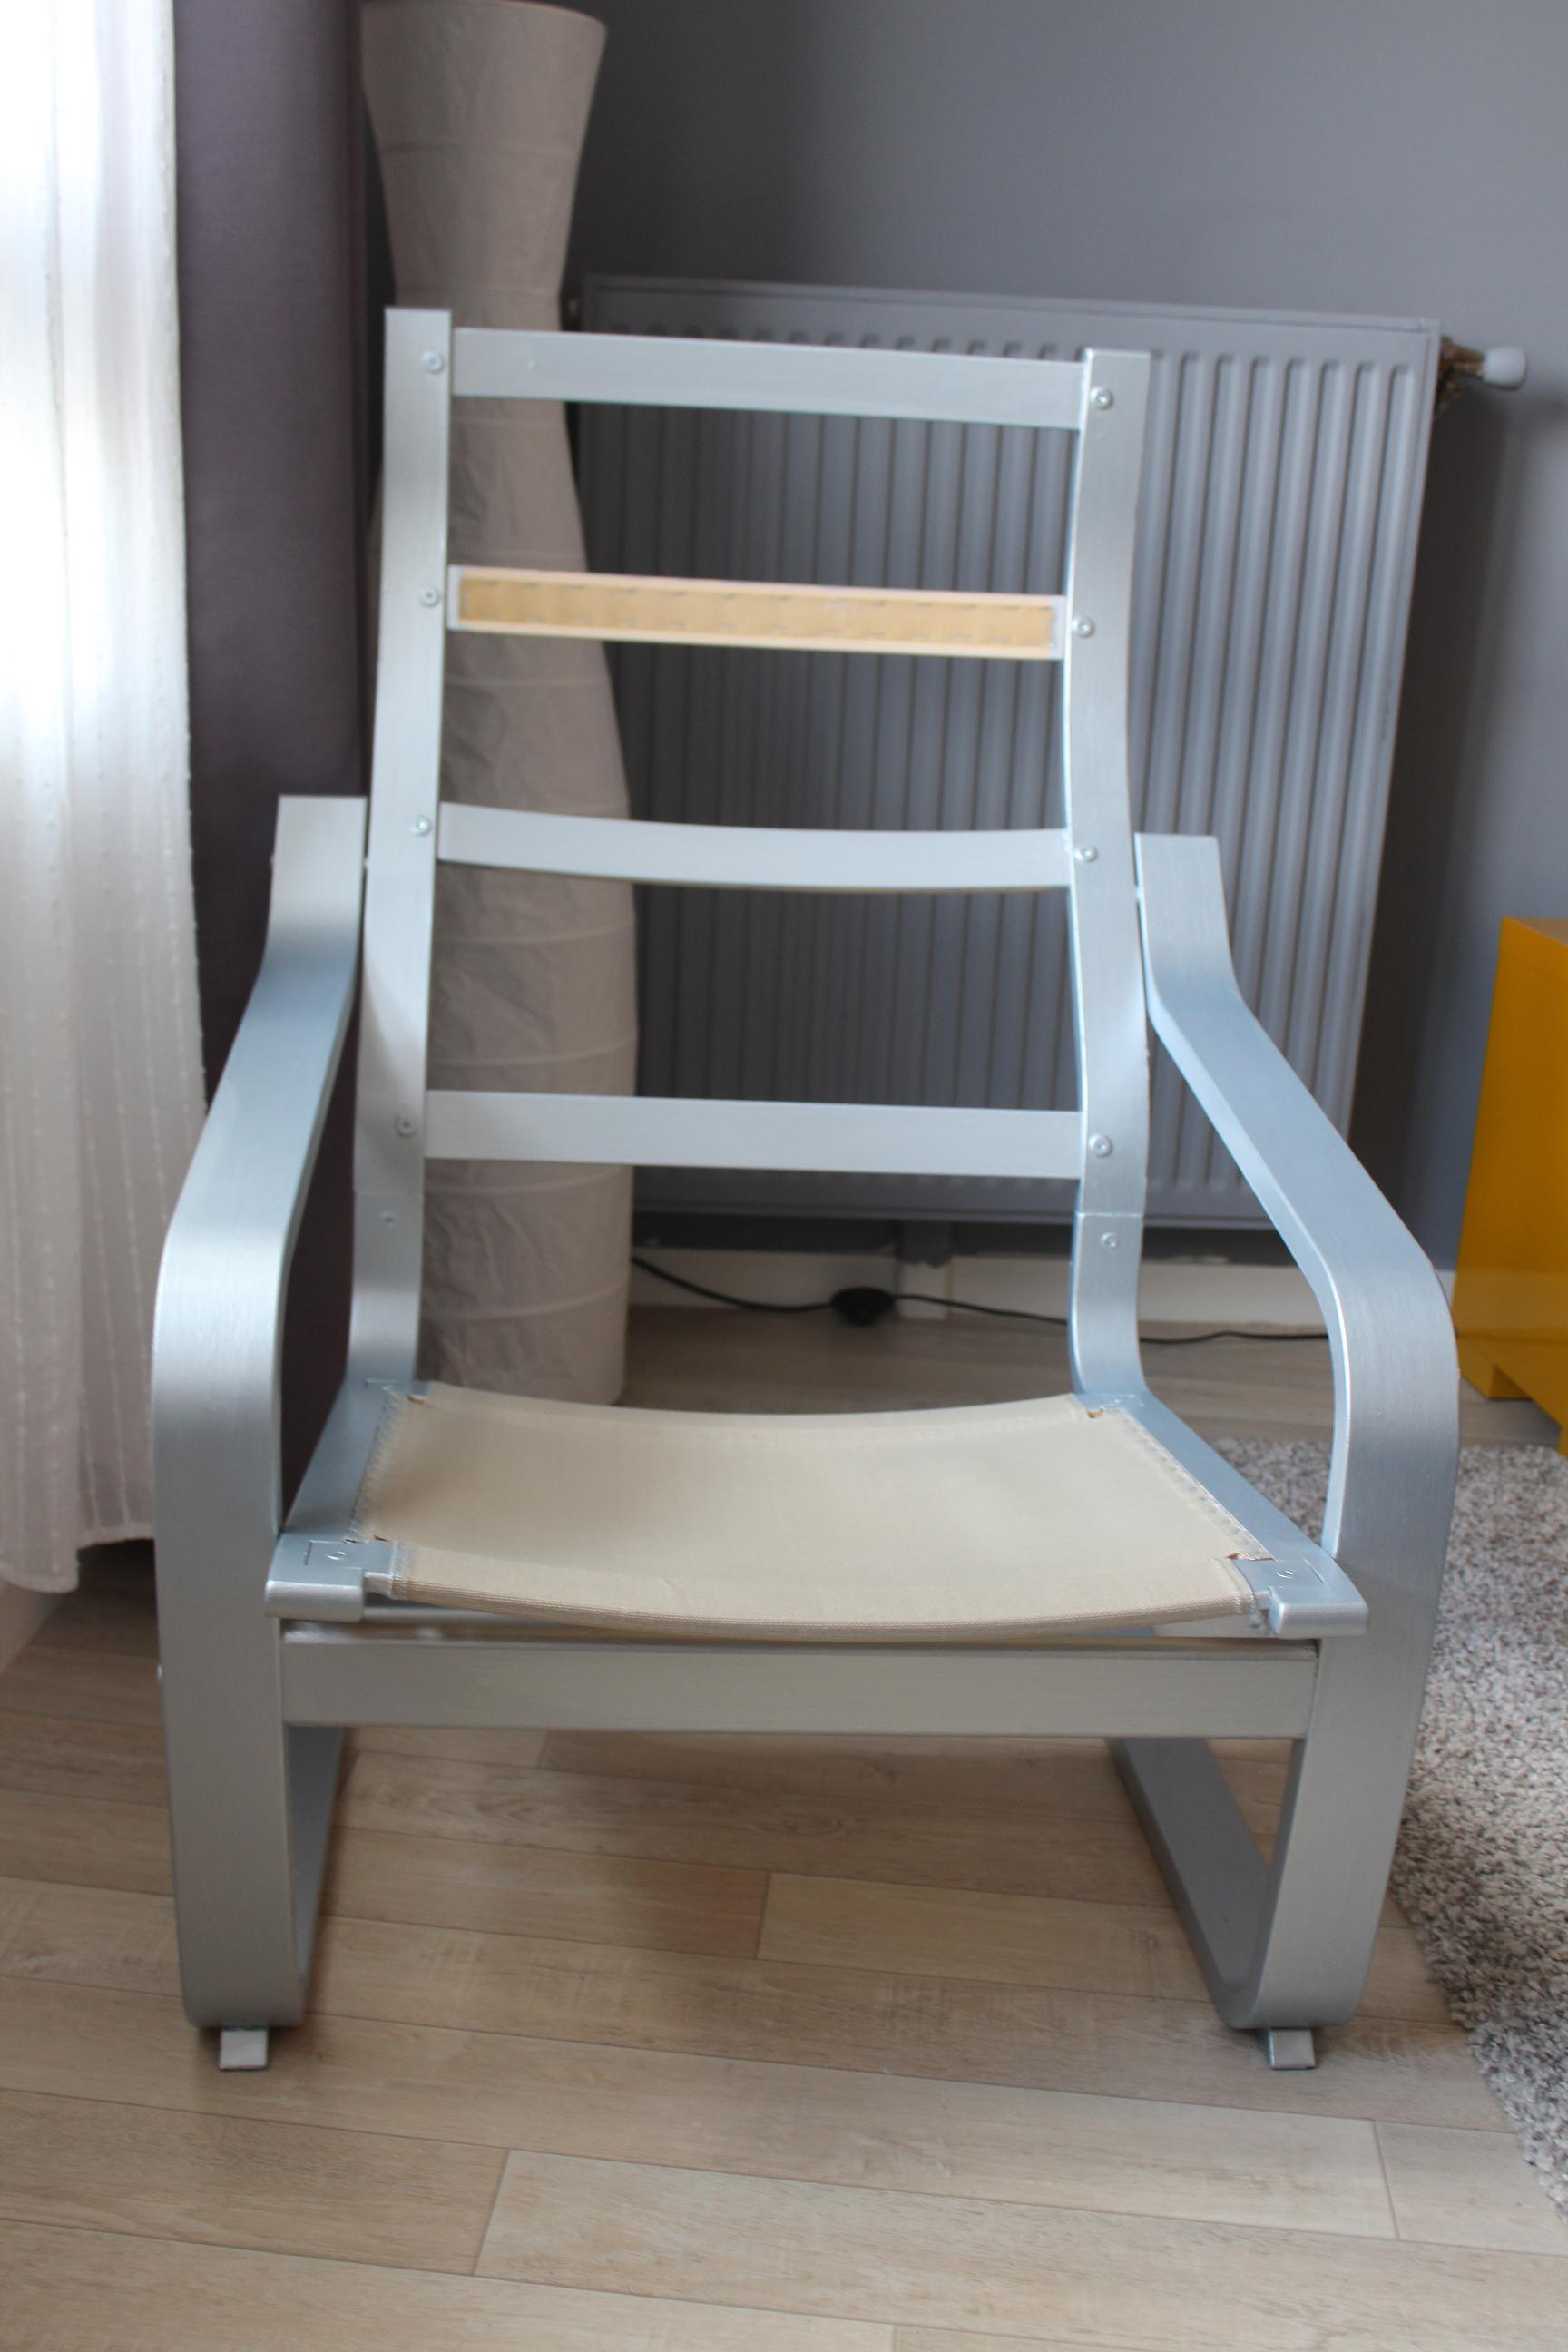 Ikea hacking fauteuil po ng lapetitemaisoncouture for Repeindre un fauteuil